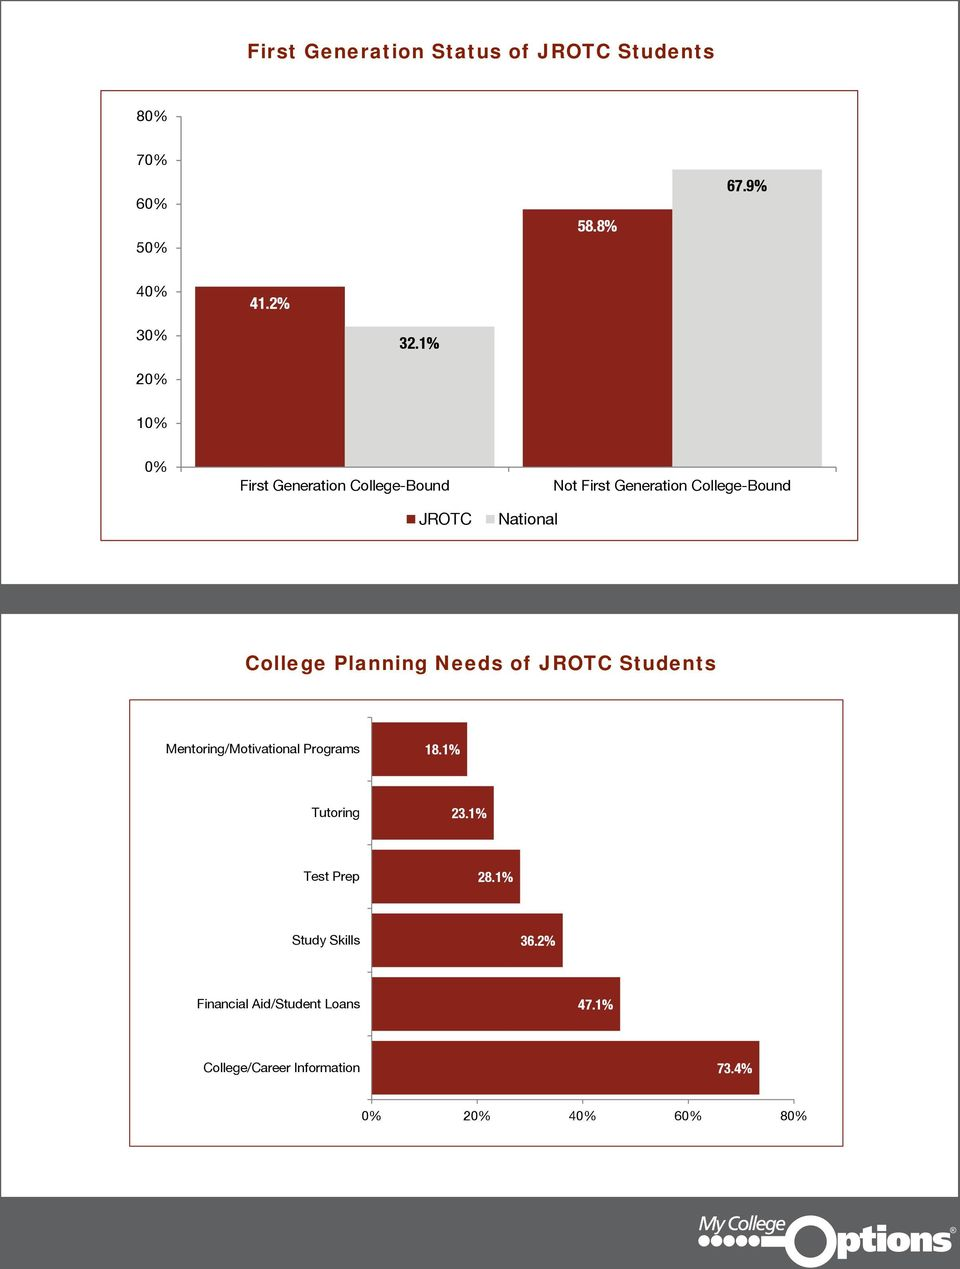 College Planning Needs of JROTC Students Mentoring/Motivational Programs 18.1% Tutoring 23.